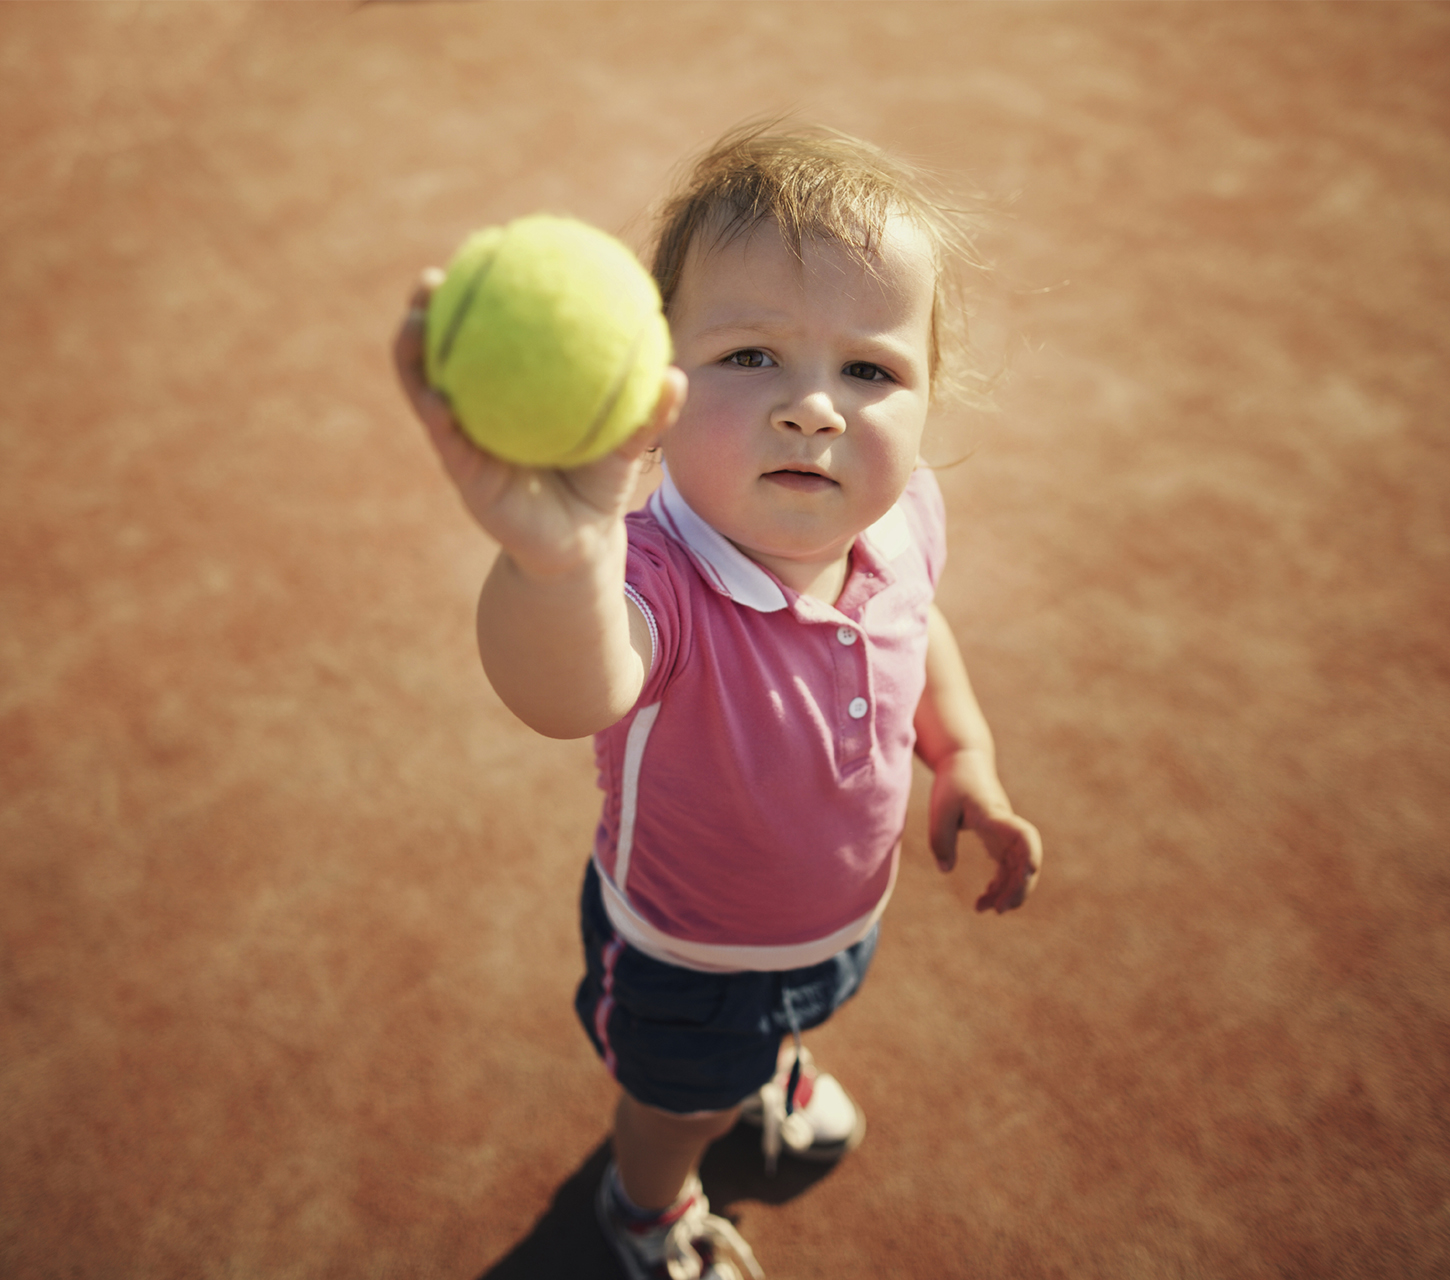 young girl holding up a tennis ball